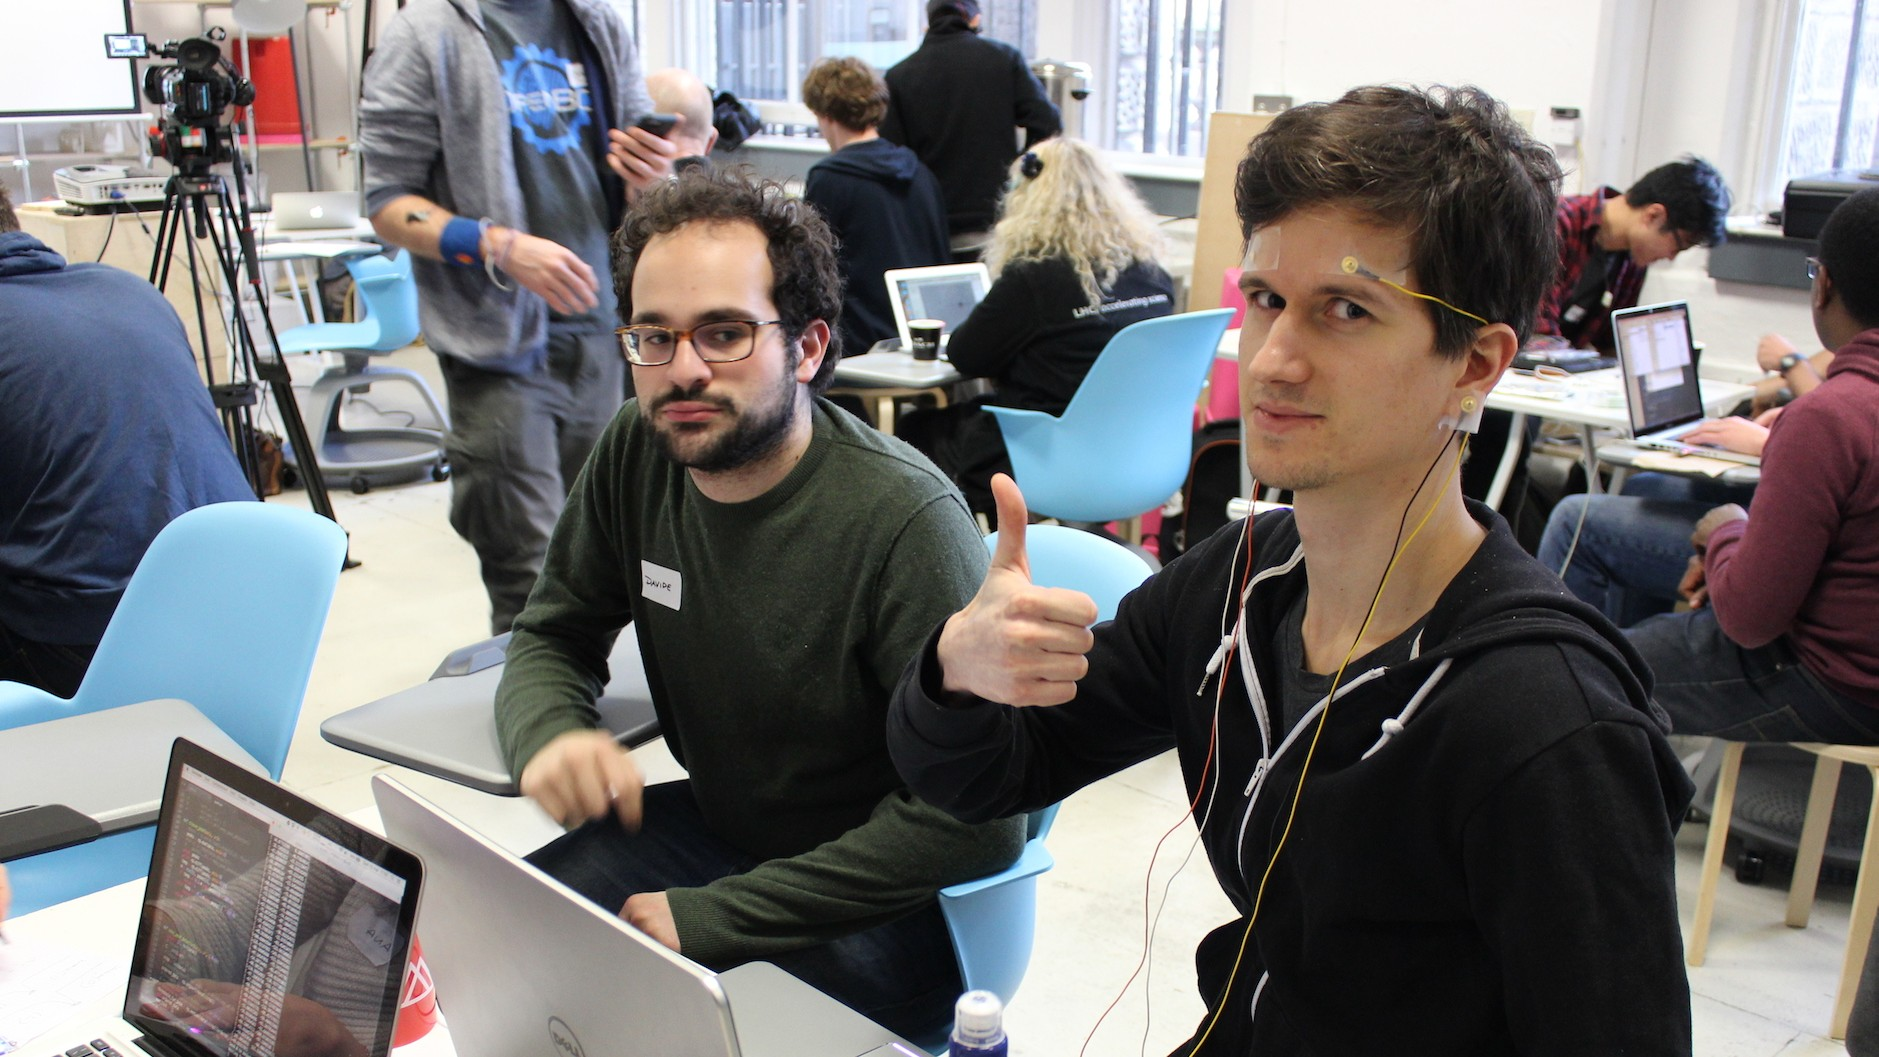 Inside a Brain Hackathon: Hacking Brain Waves to Extend the Mind